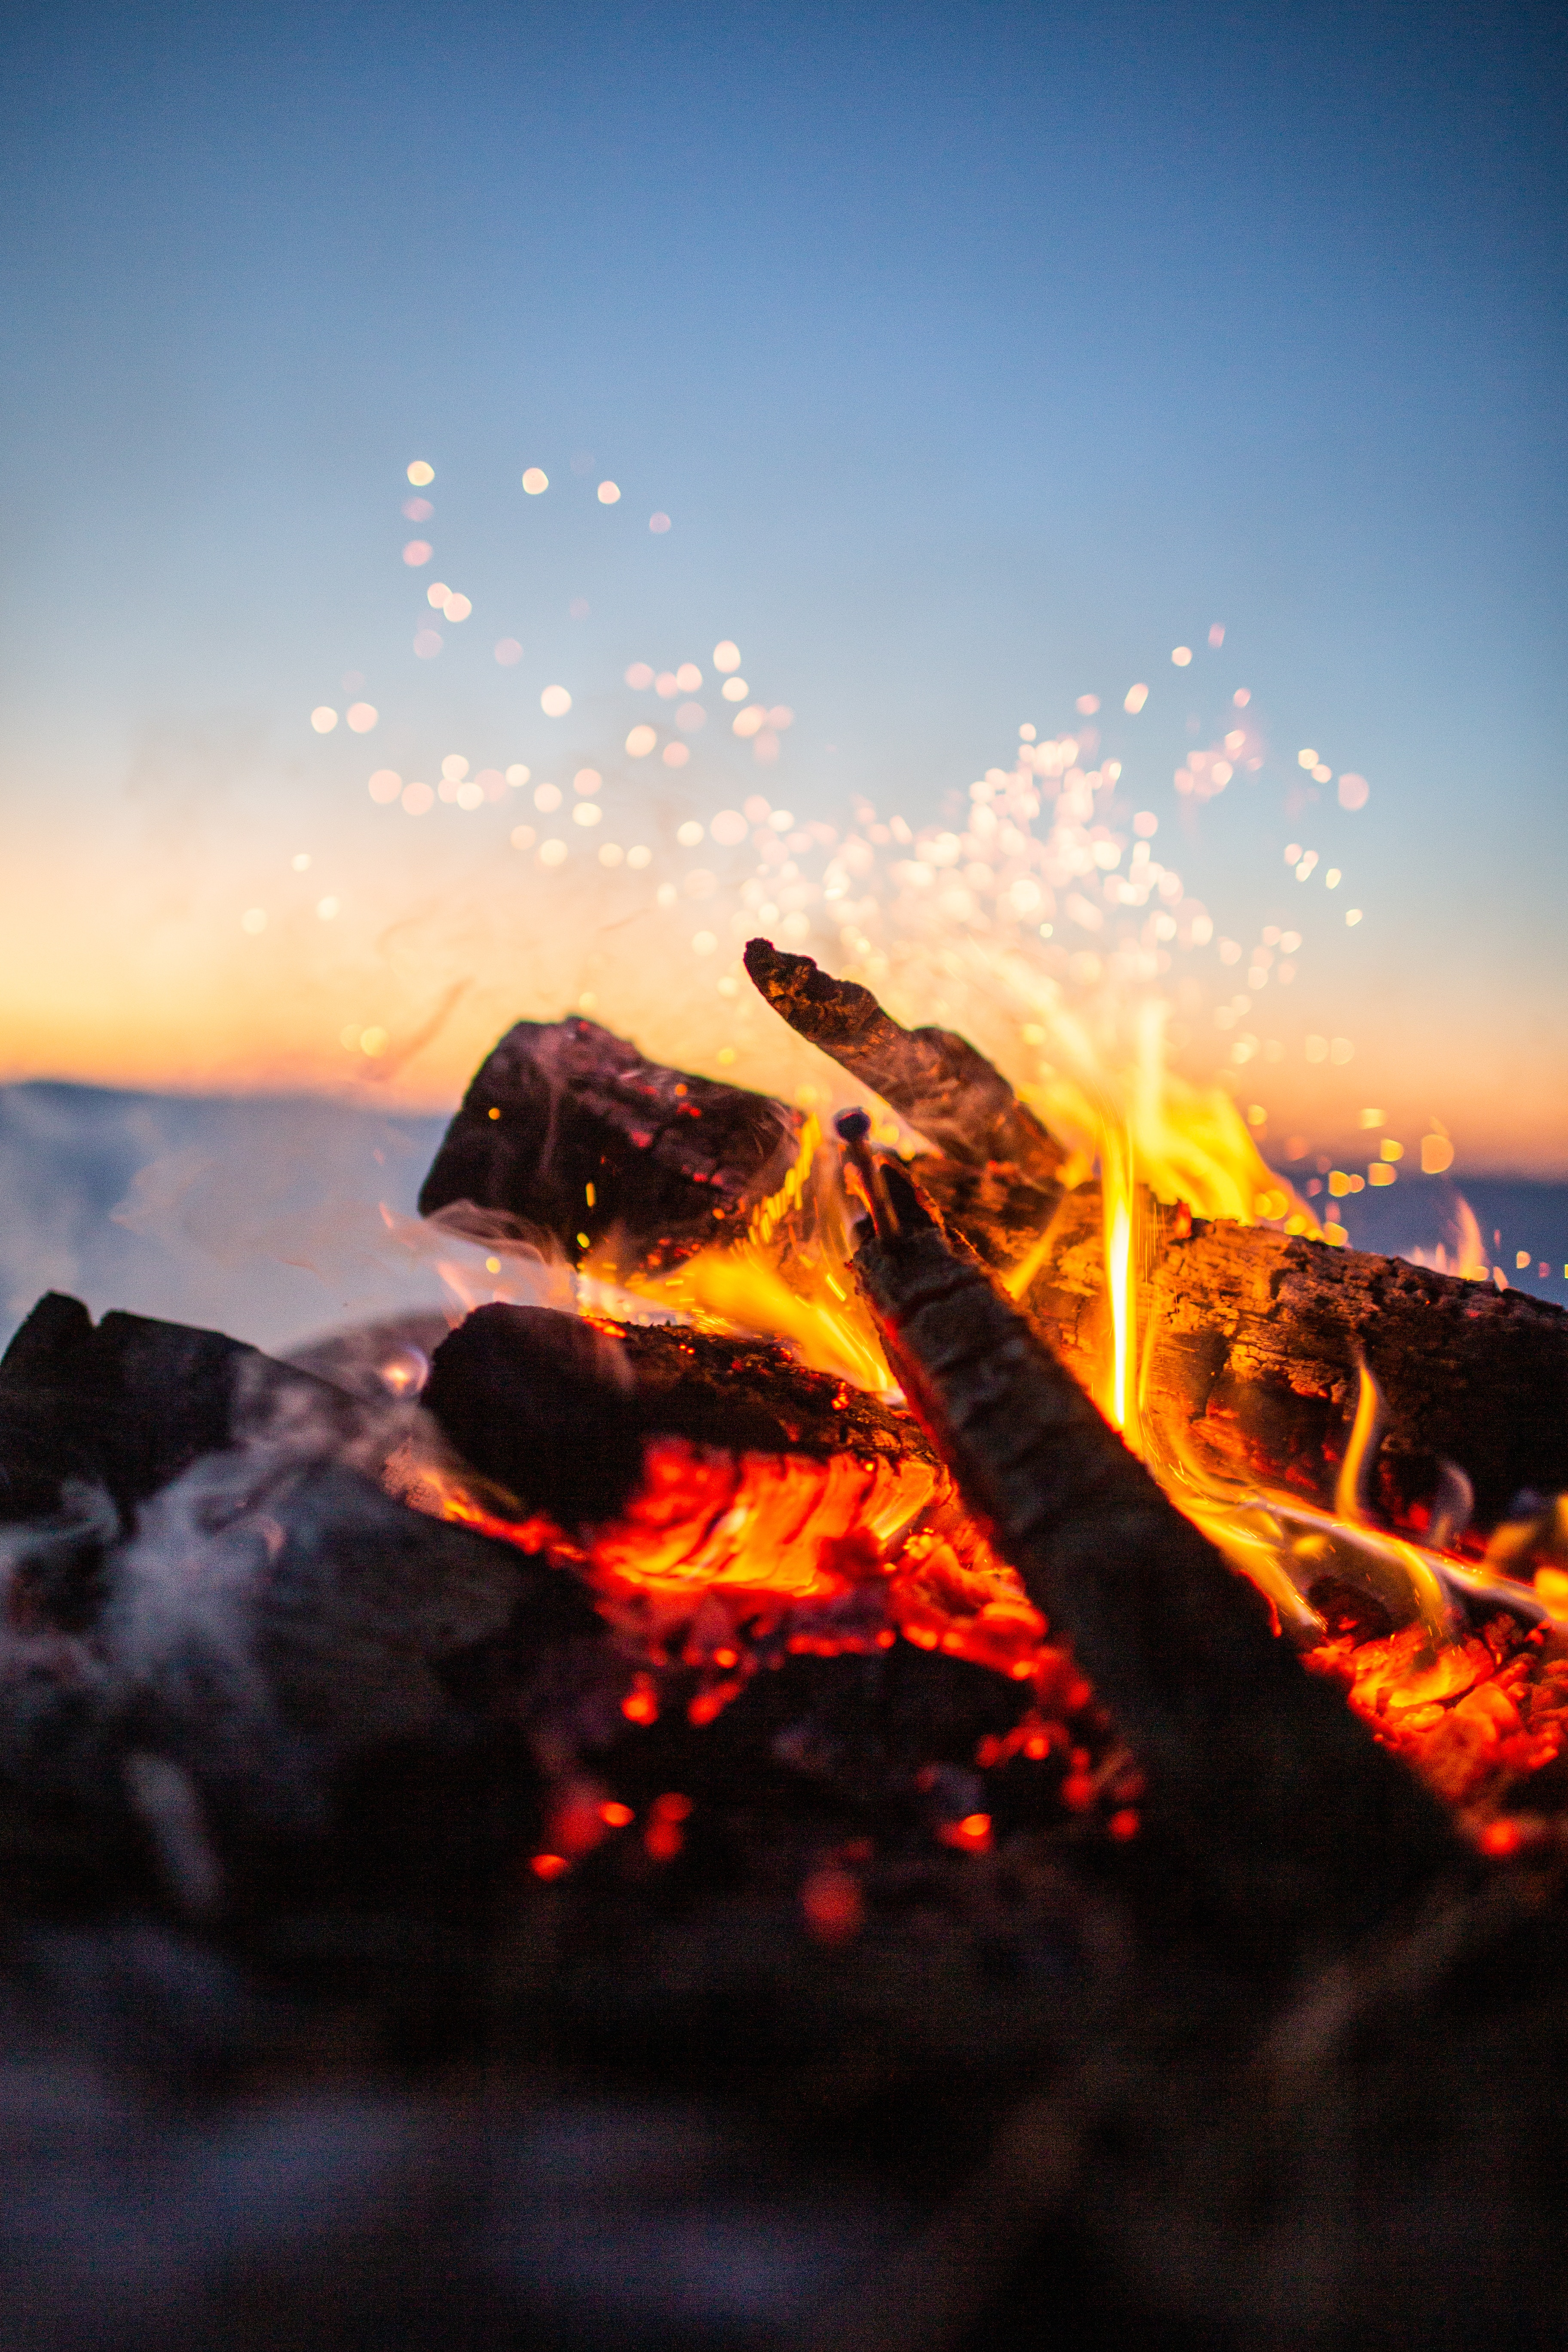 155336 Screensavers and Wallpapers Bonfire for phone. Download Blur, Camping, Fire, Bonfire, Sparks, Miscellanea, Miscellaneous, Smooth, Firewood, Campsite pictures for free